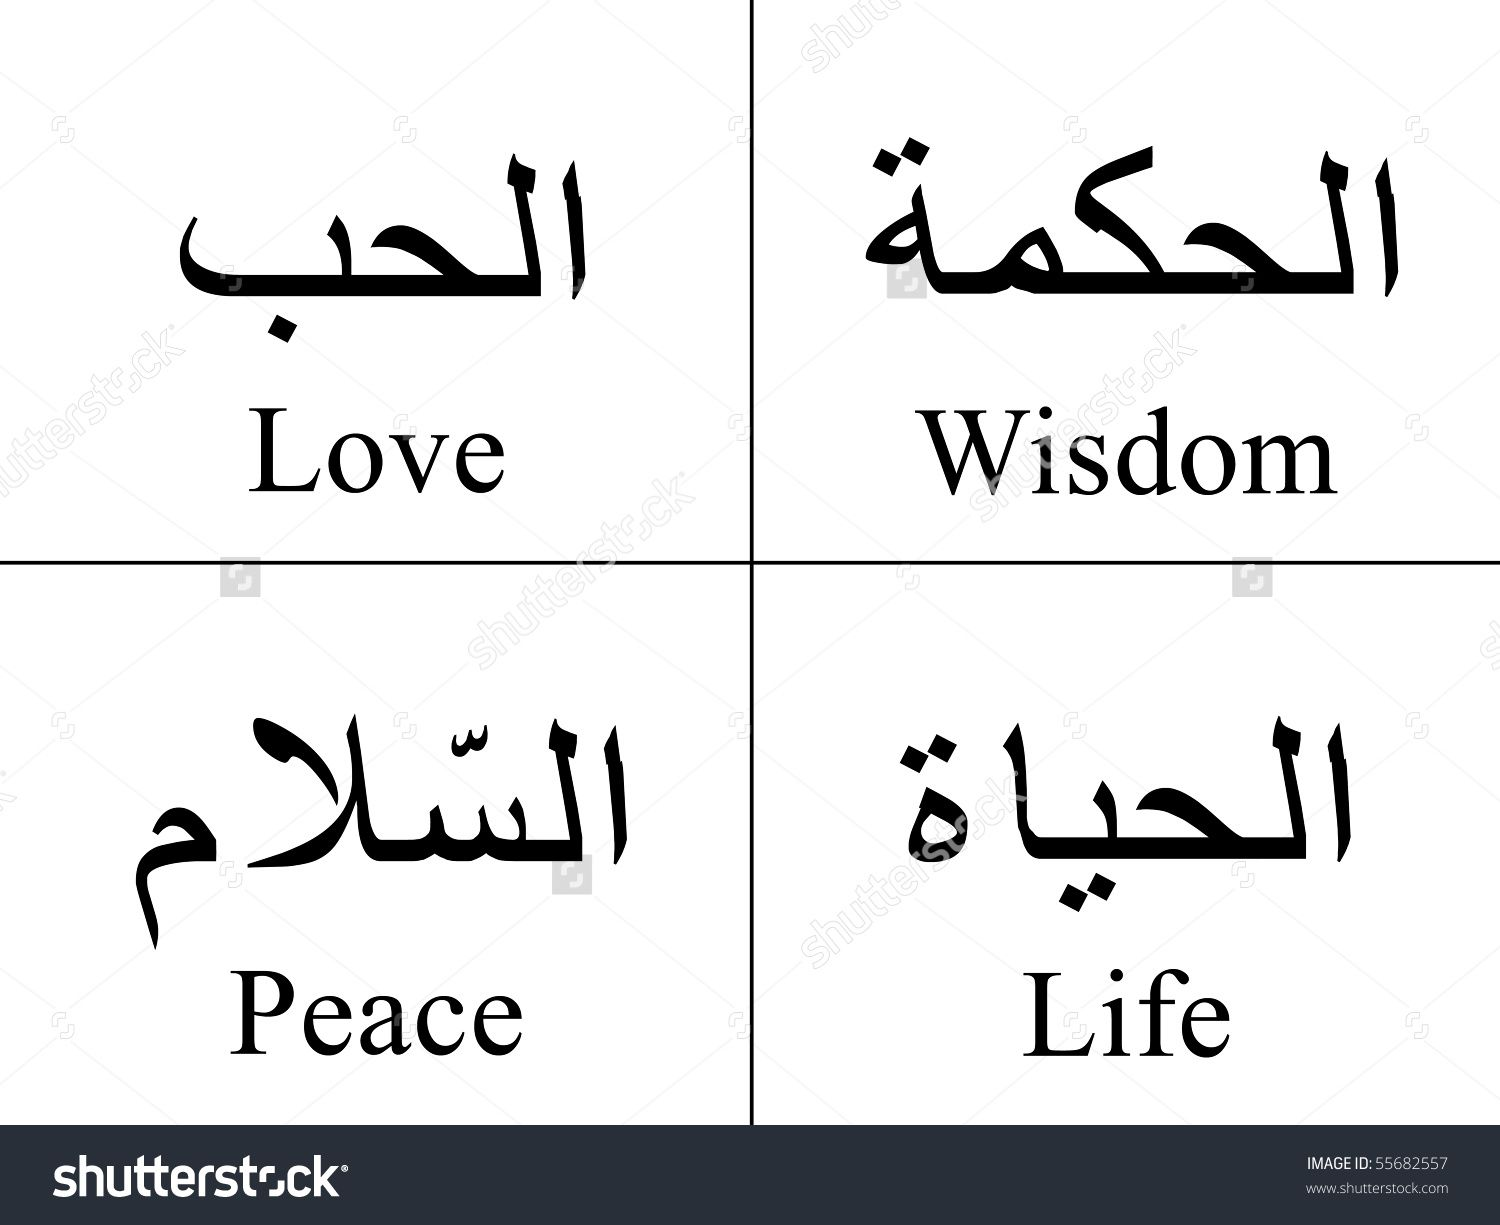 Arabic Words Isolated On White With Their Meaning In English For